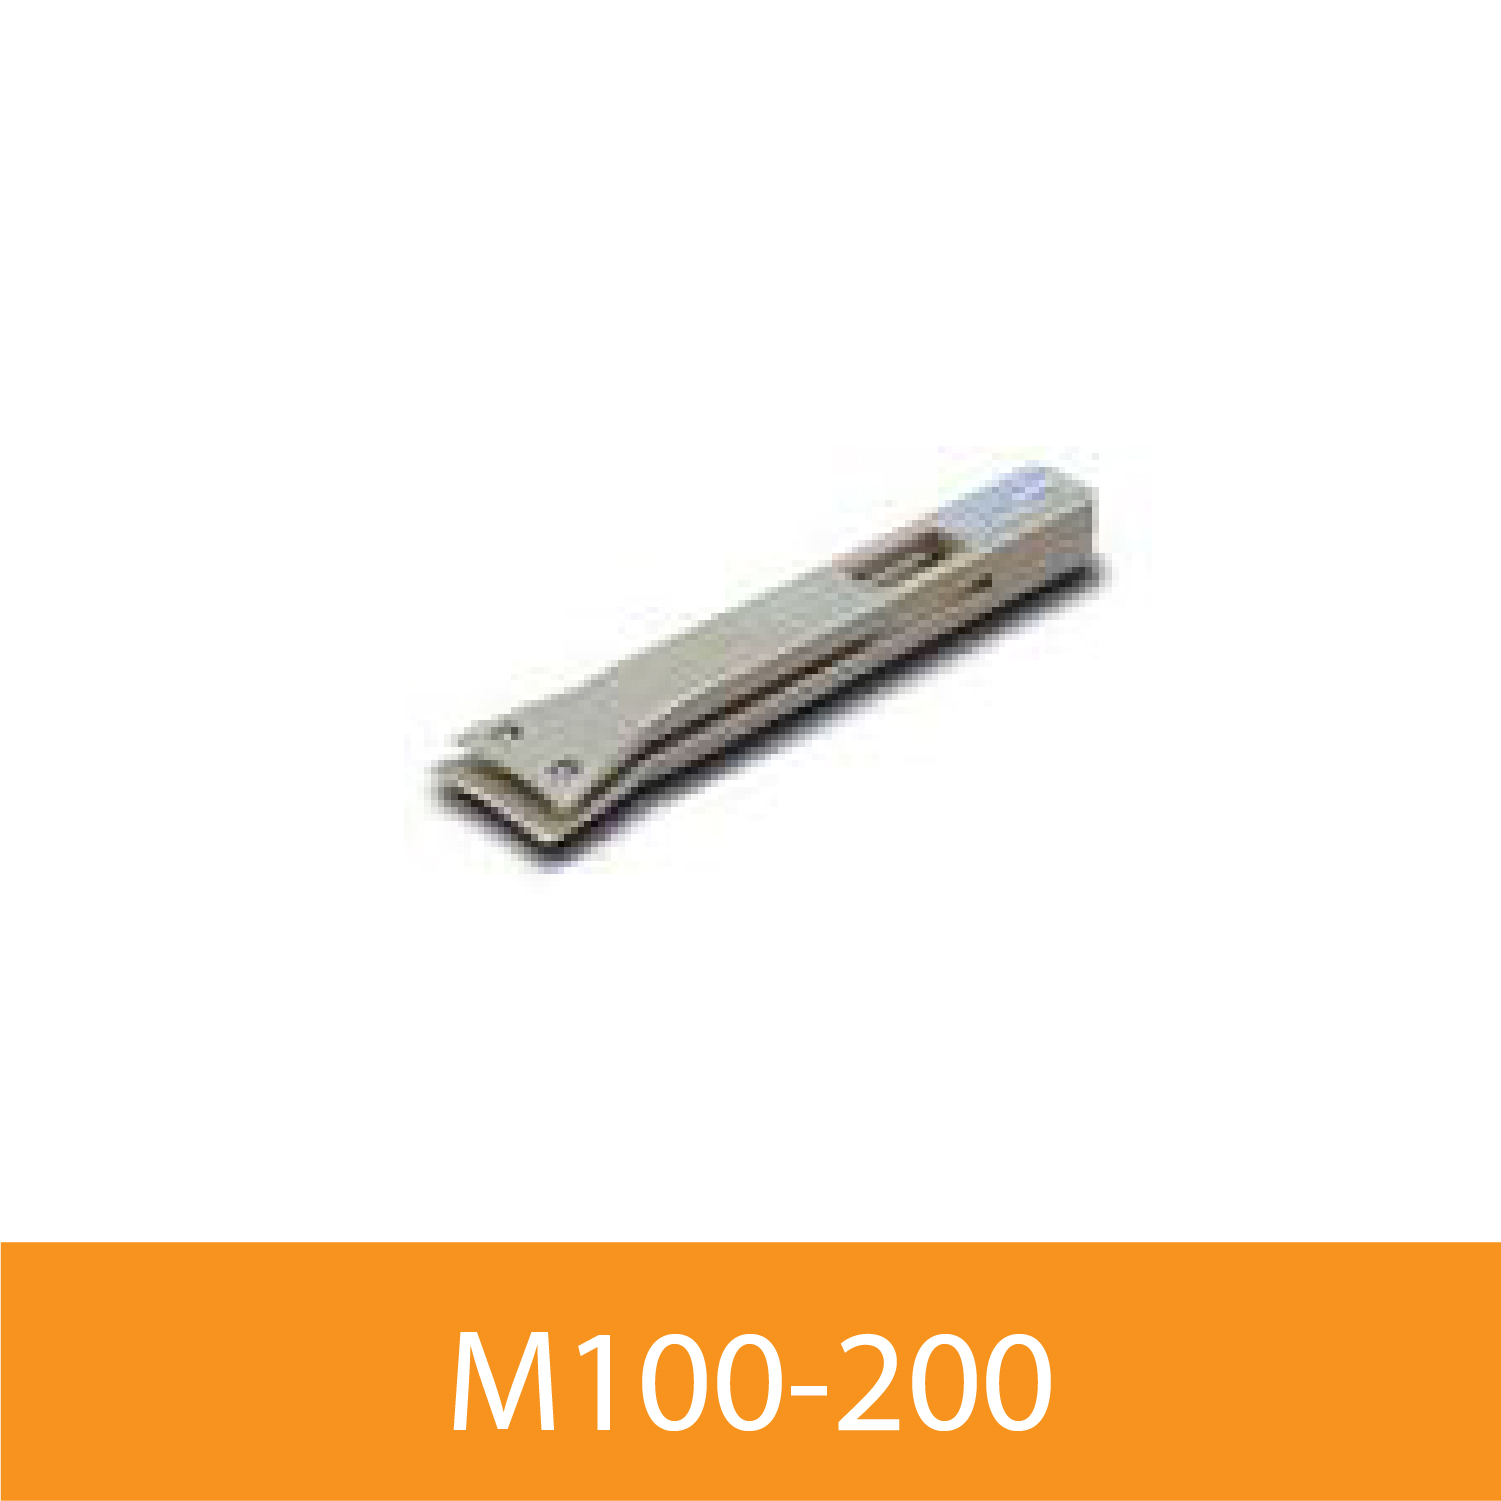 Wafer Tweezer (M100-200)